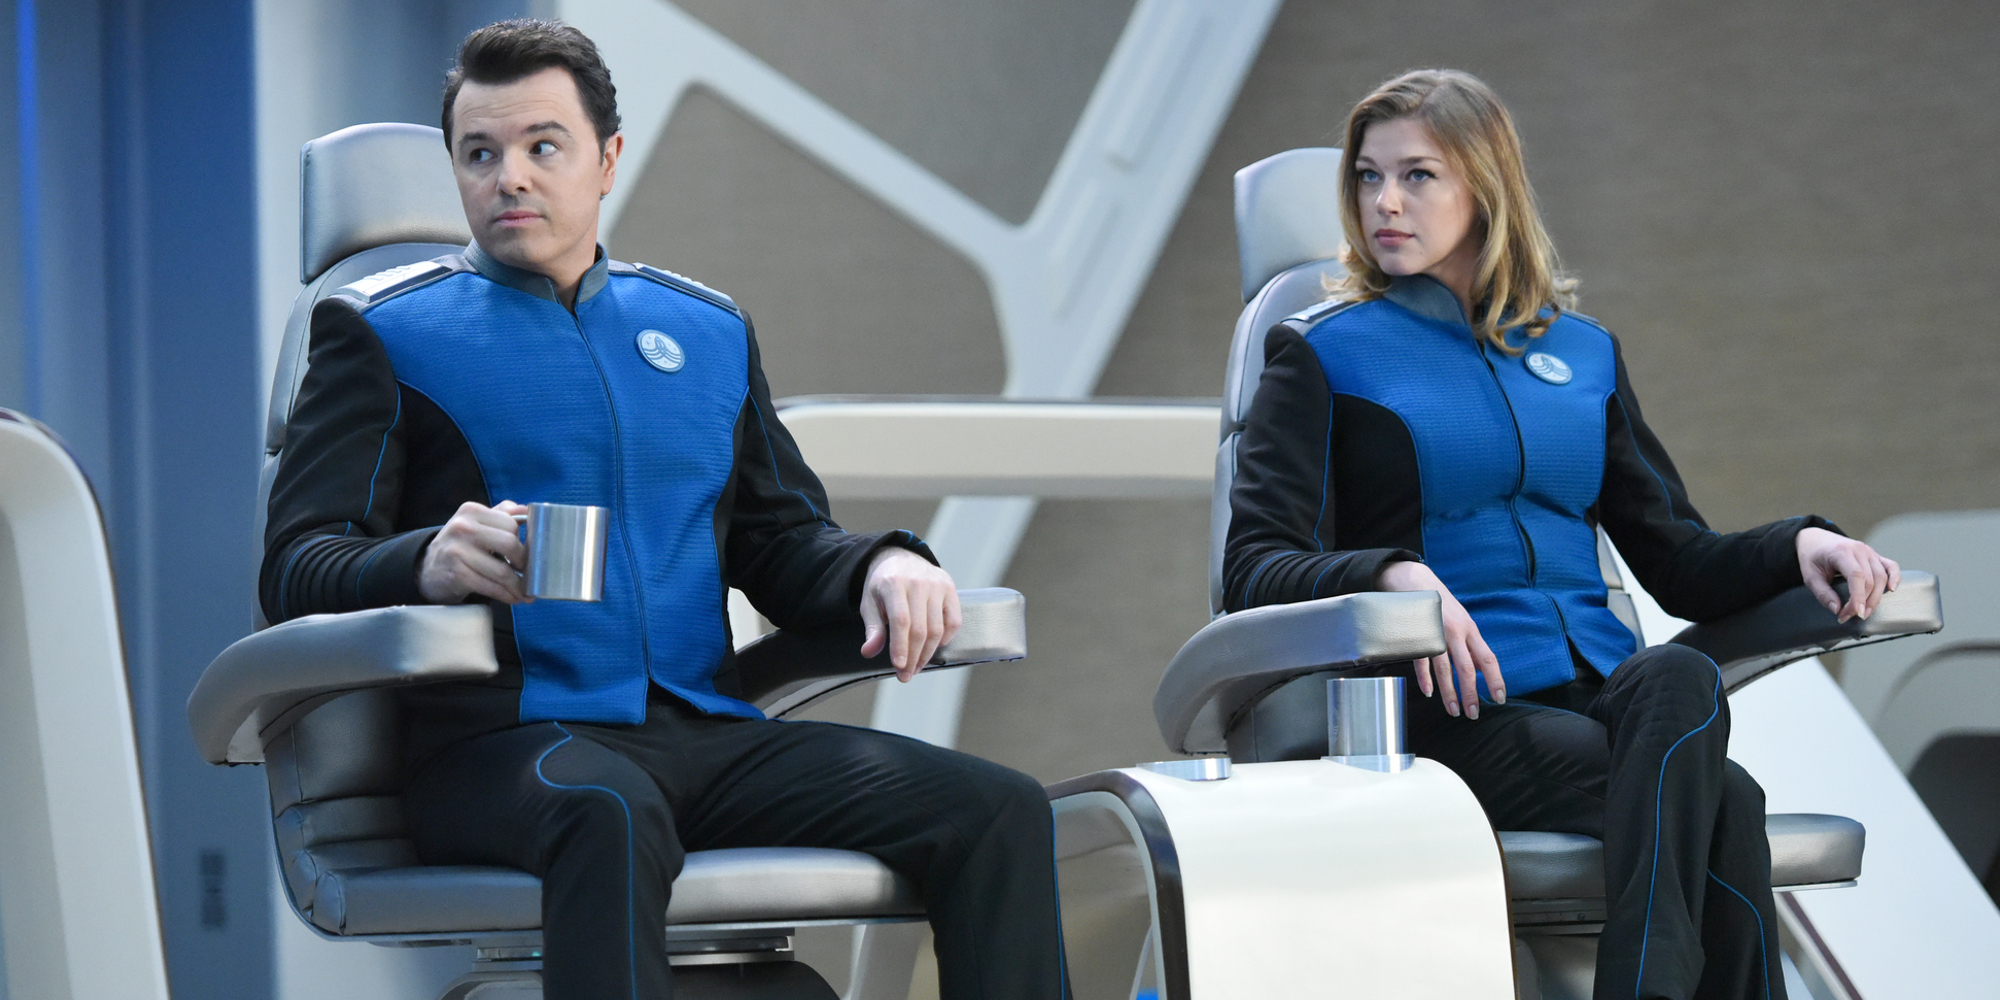 Seth MacFarlane and Adrianne Palicki in The Orville